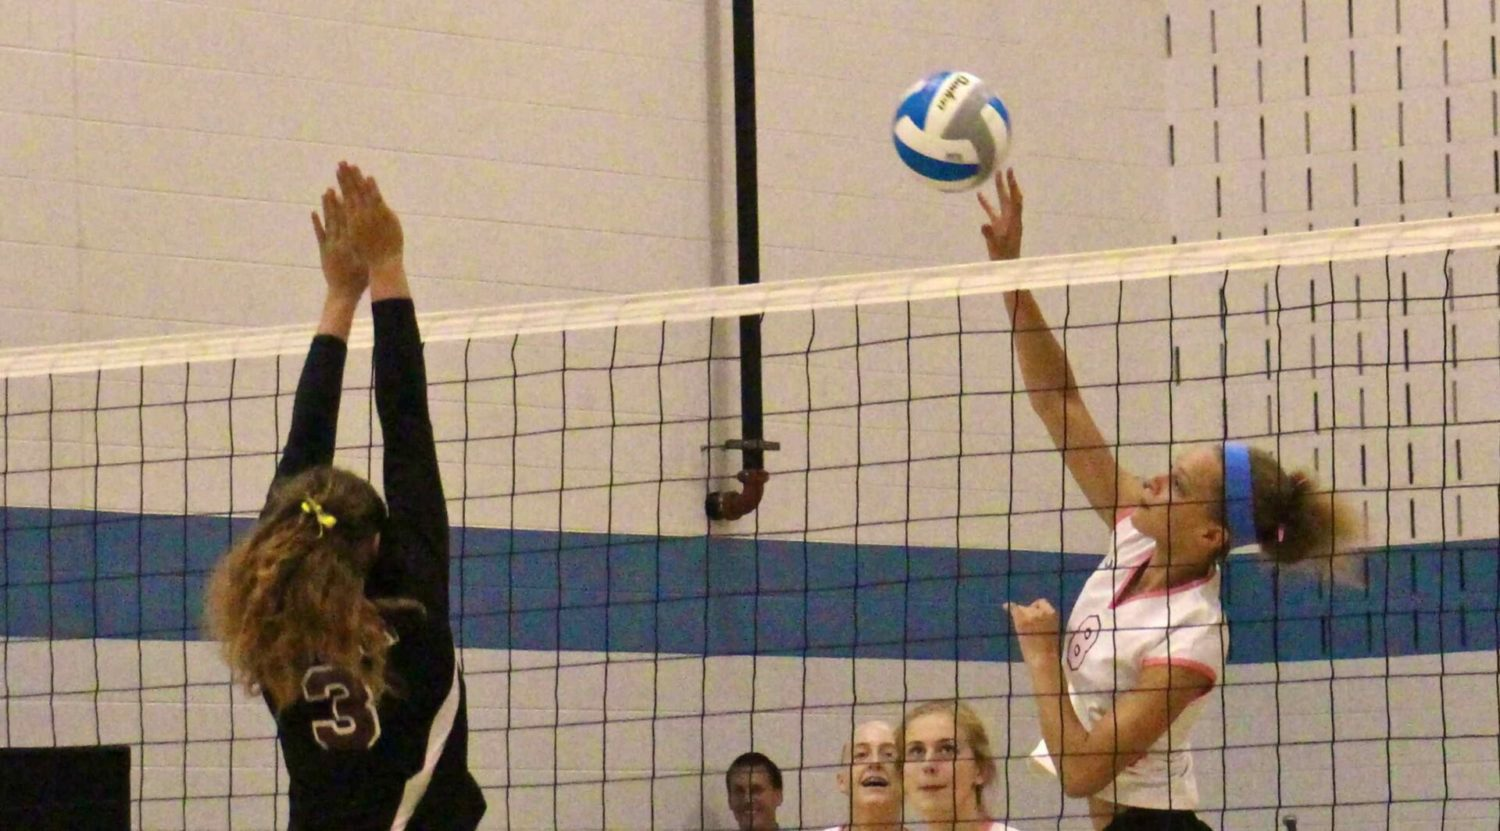 Mona Shores volleyball team downs Muskegon, takes another step in drive for league title